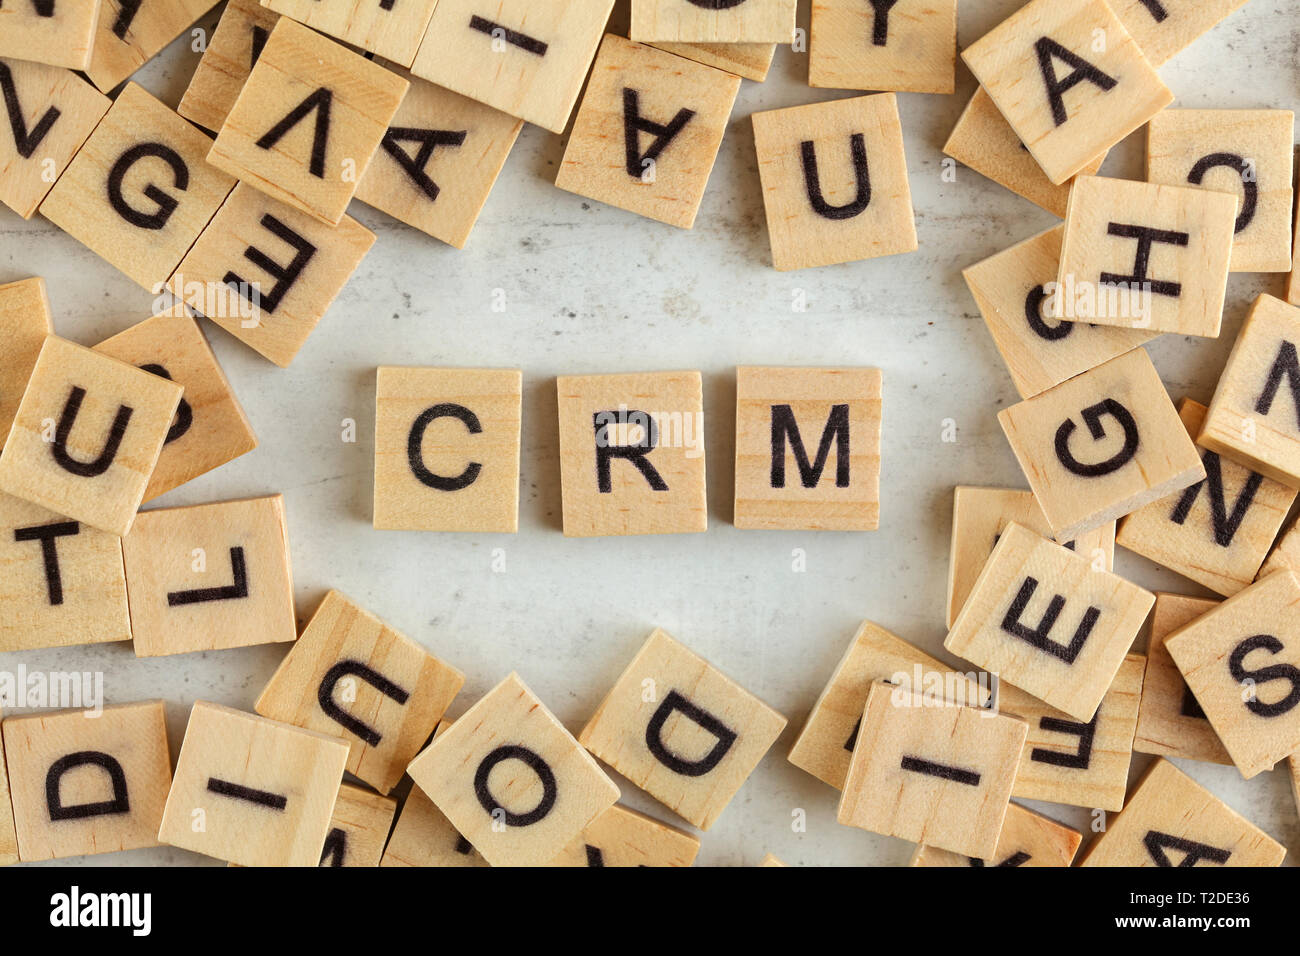 Top down view, pile of square wooden blocks with letters CRM stands for Customer Relationship Management on white board - Stock Image